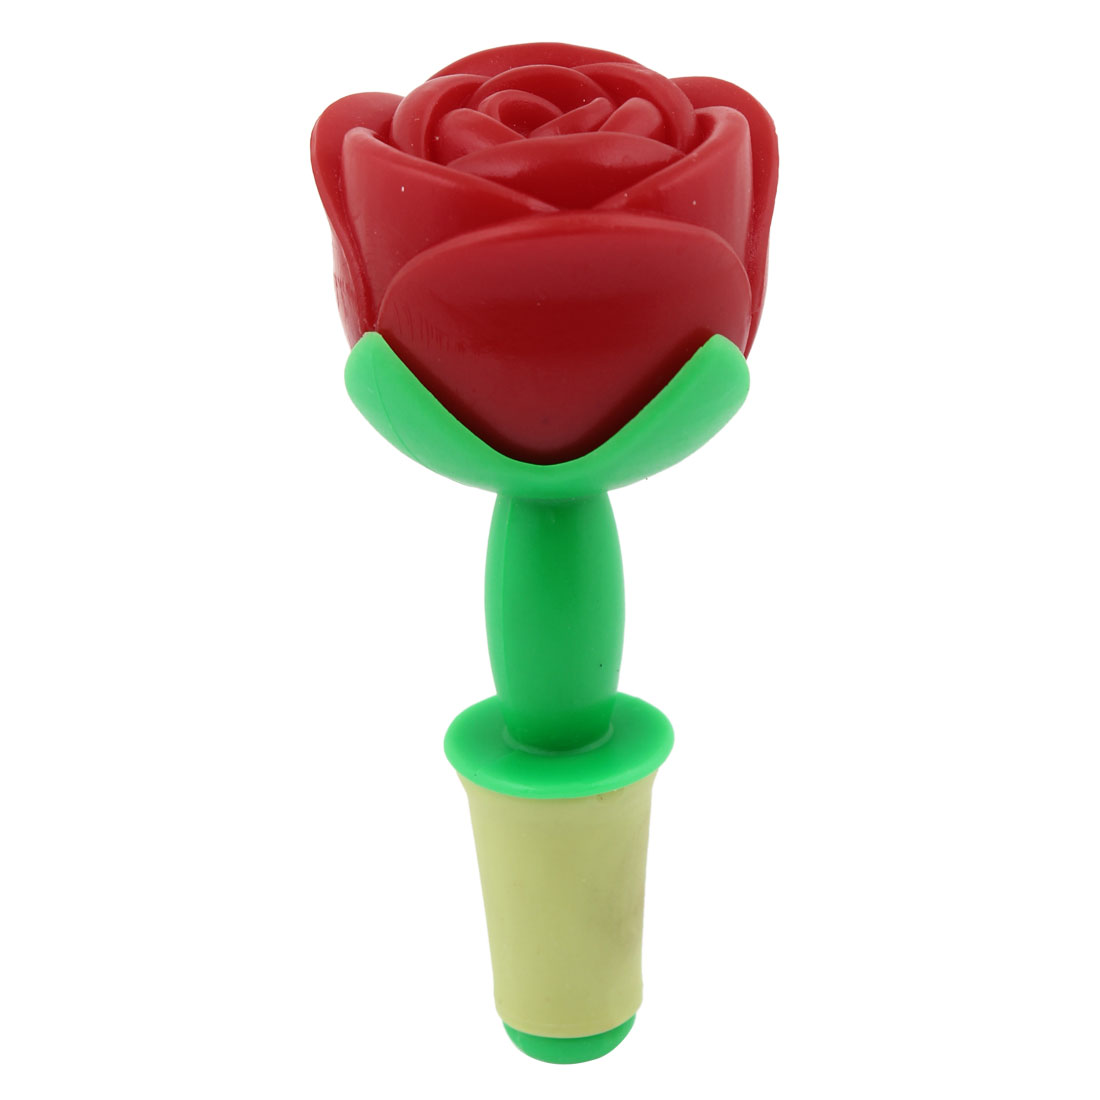 Home Barware Red Rose Shape Design Wine Bottle Stopper